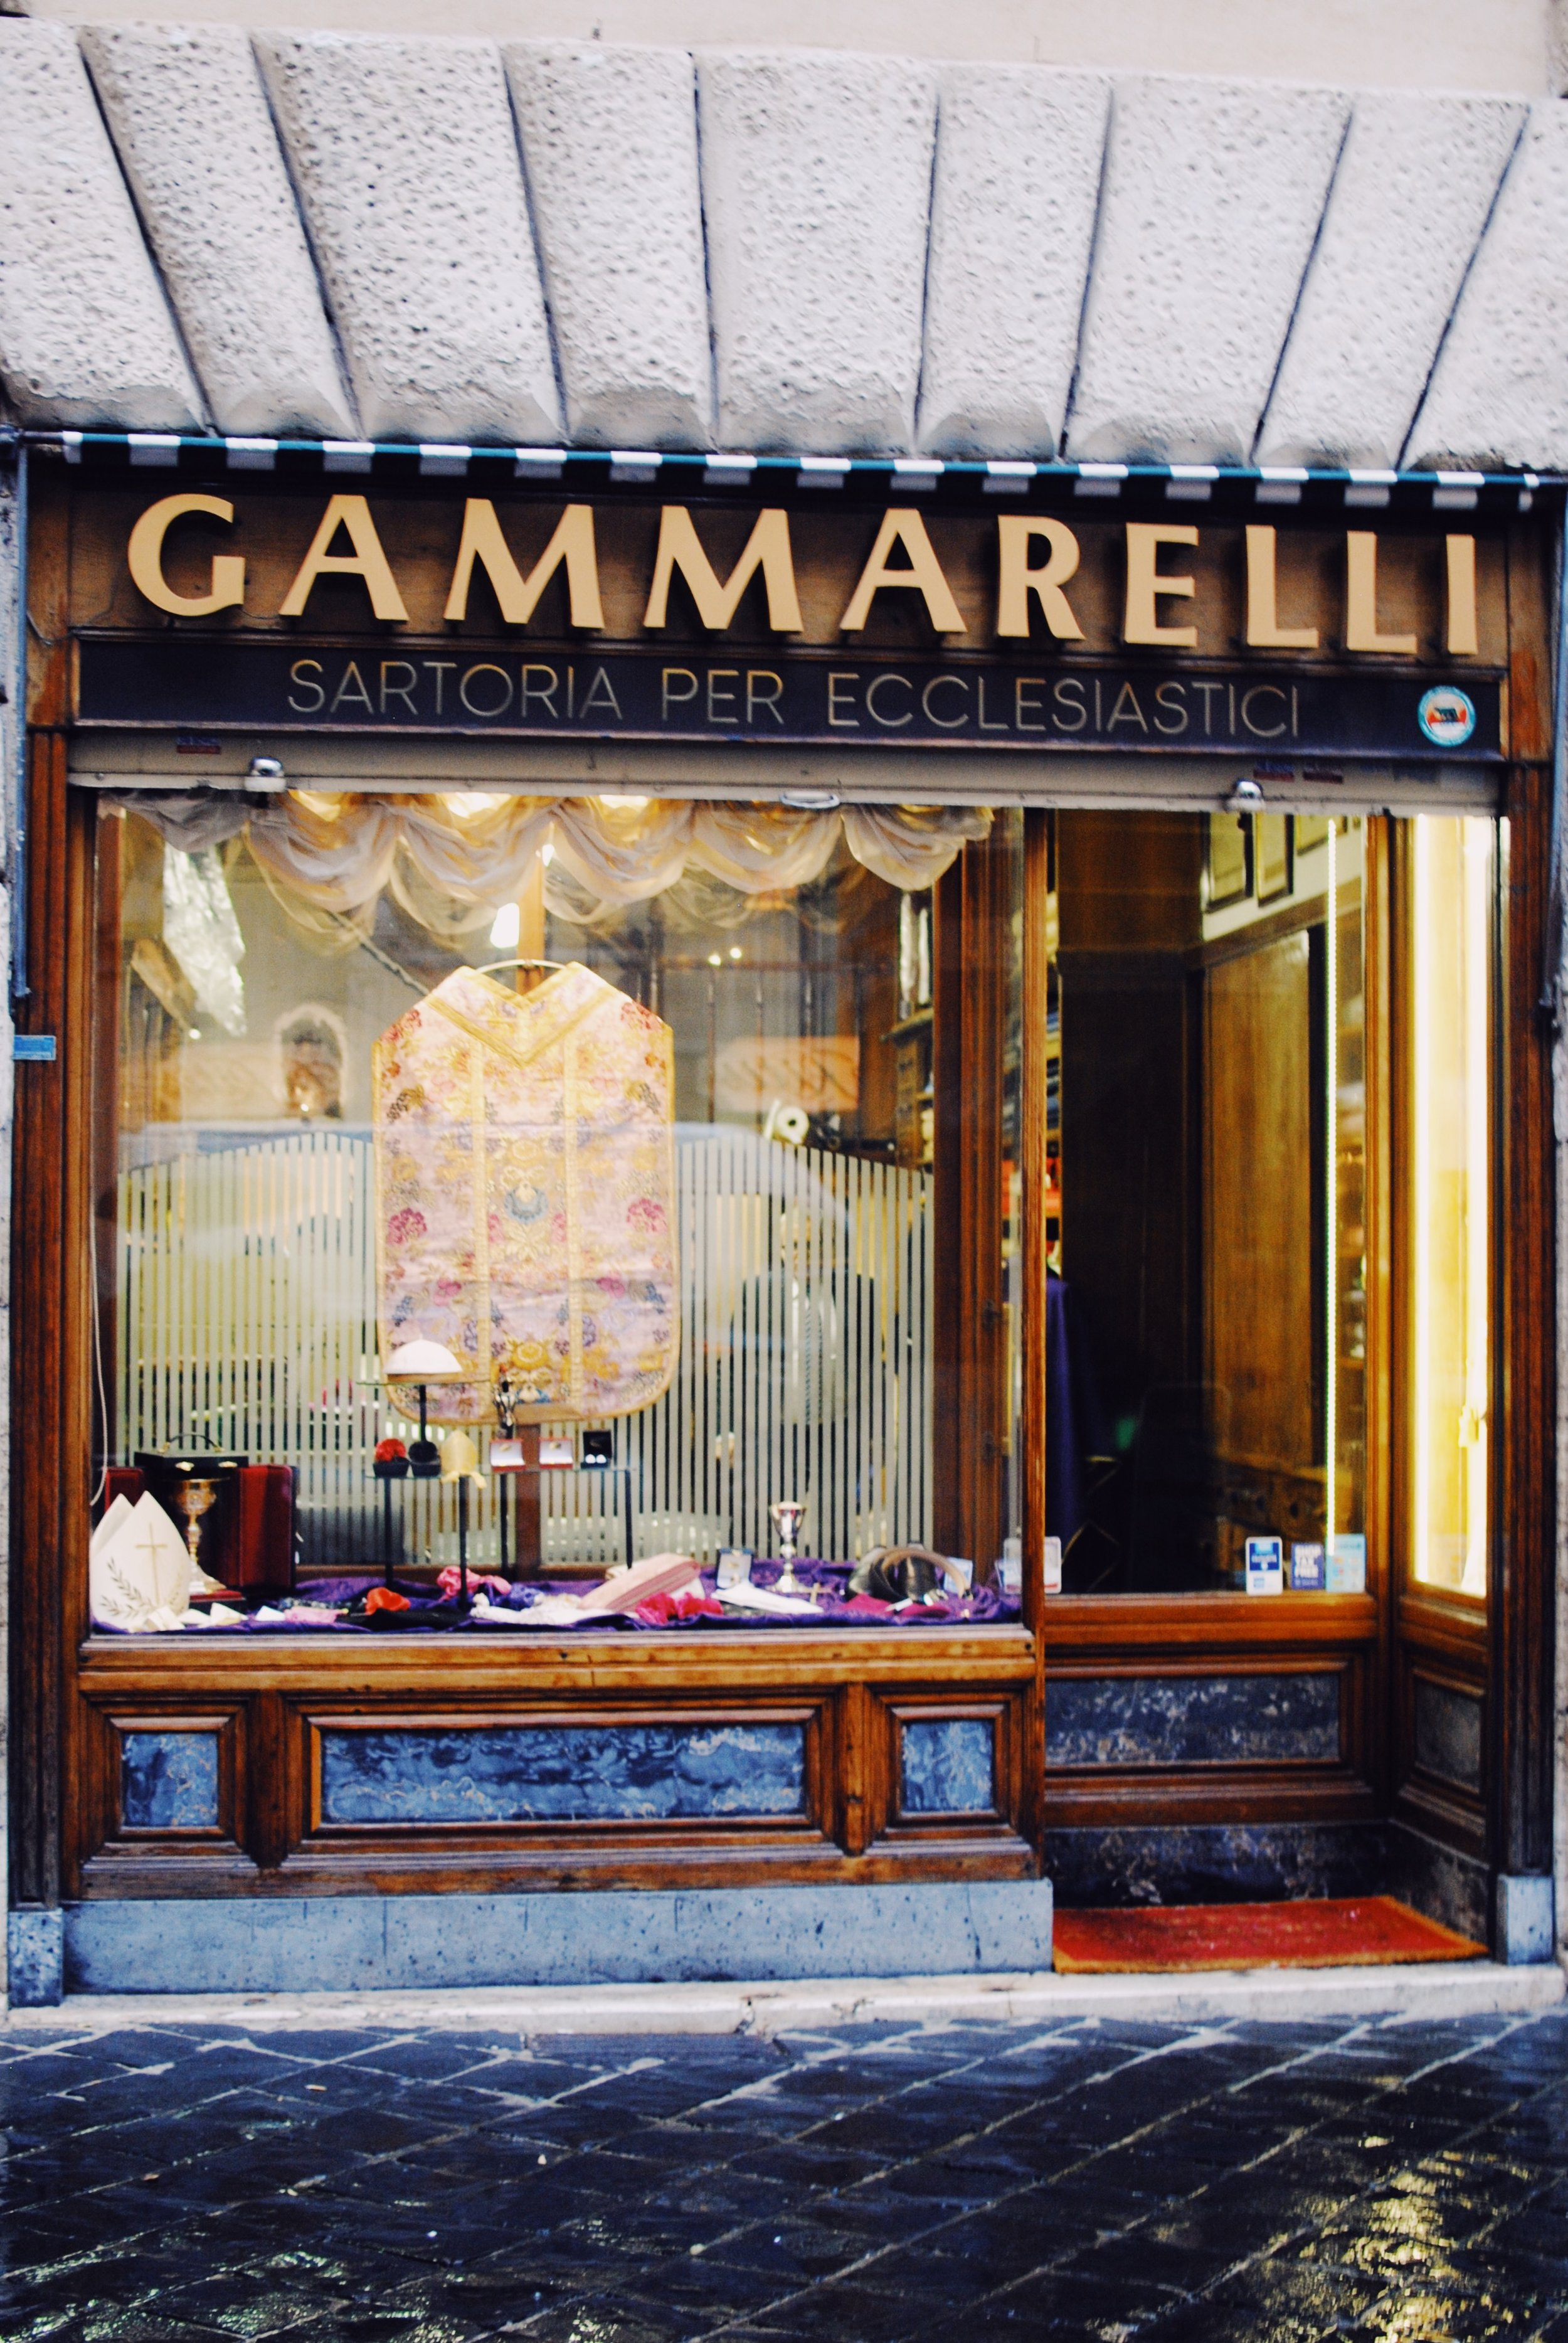 Gammarelli: Storefront. The display will also change depending on what important Catholic event has occurred.